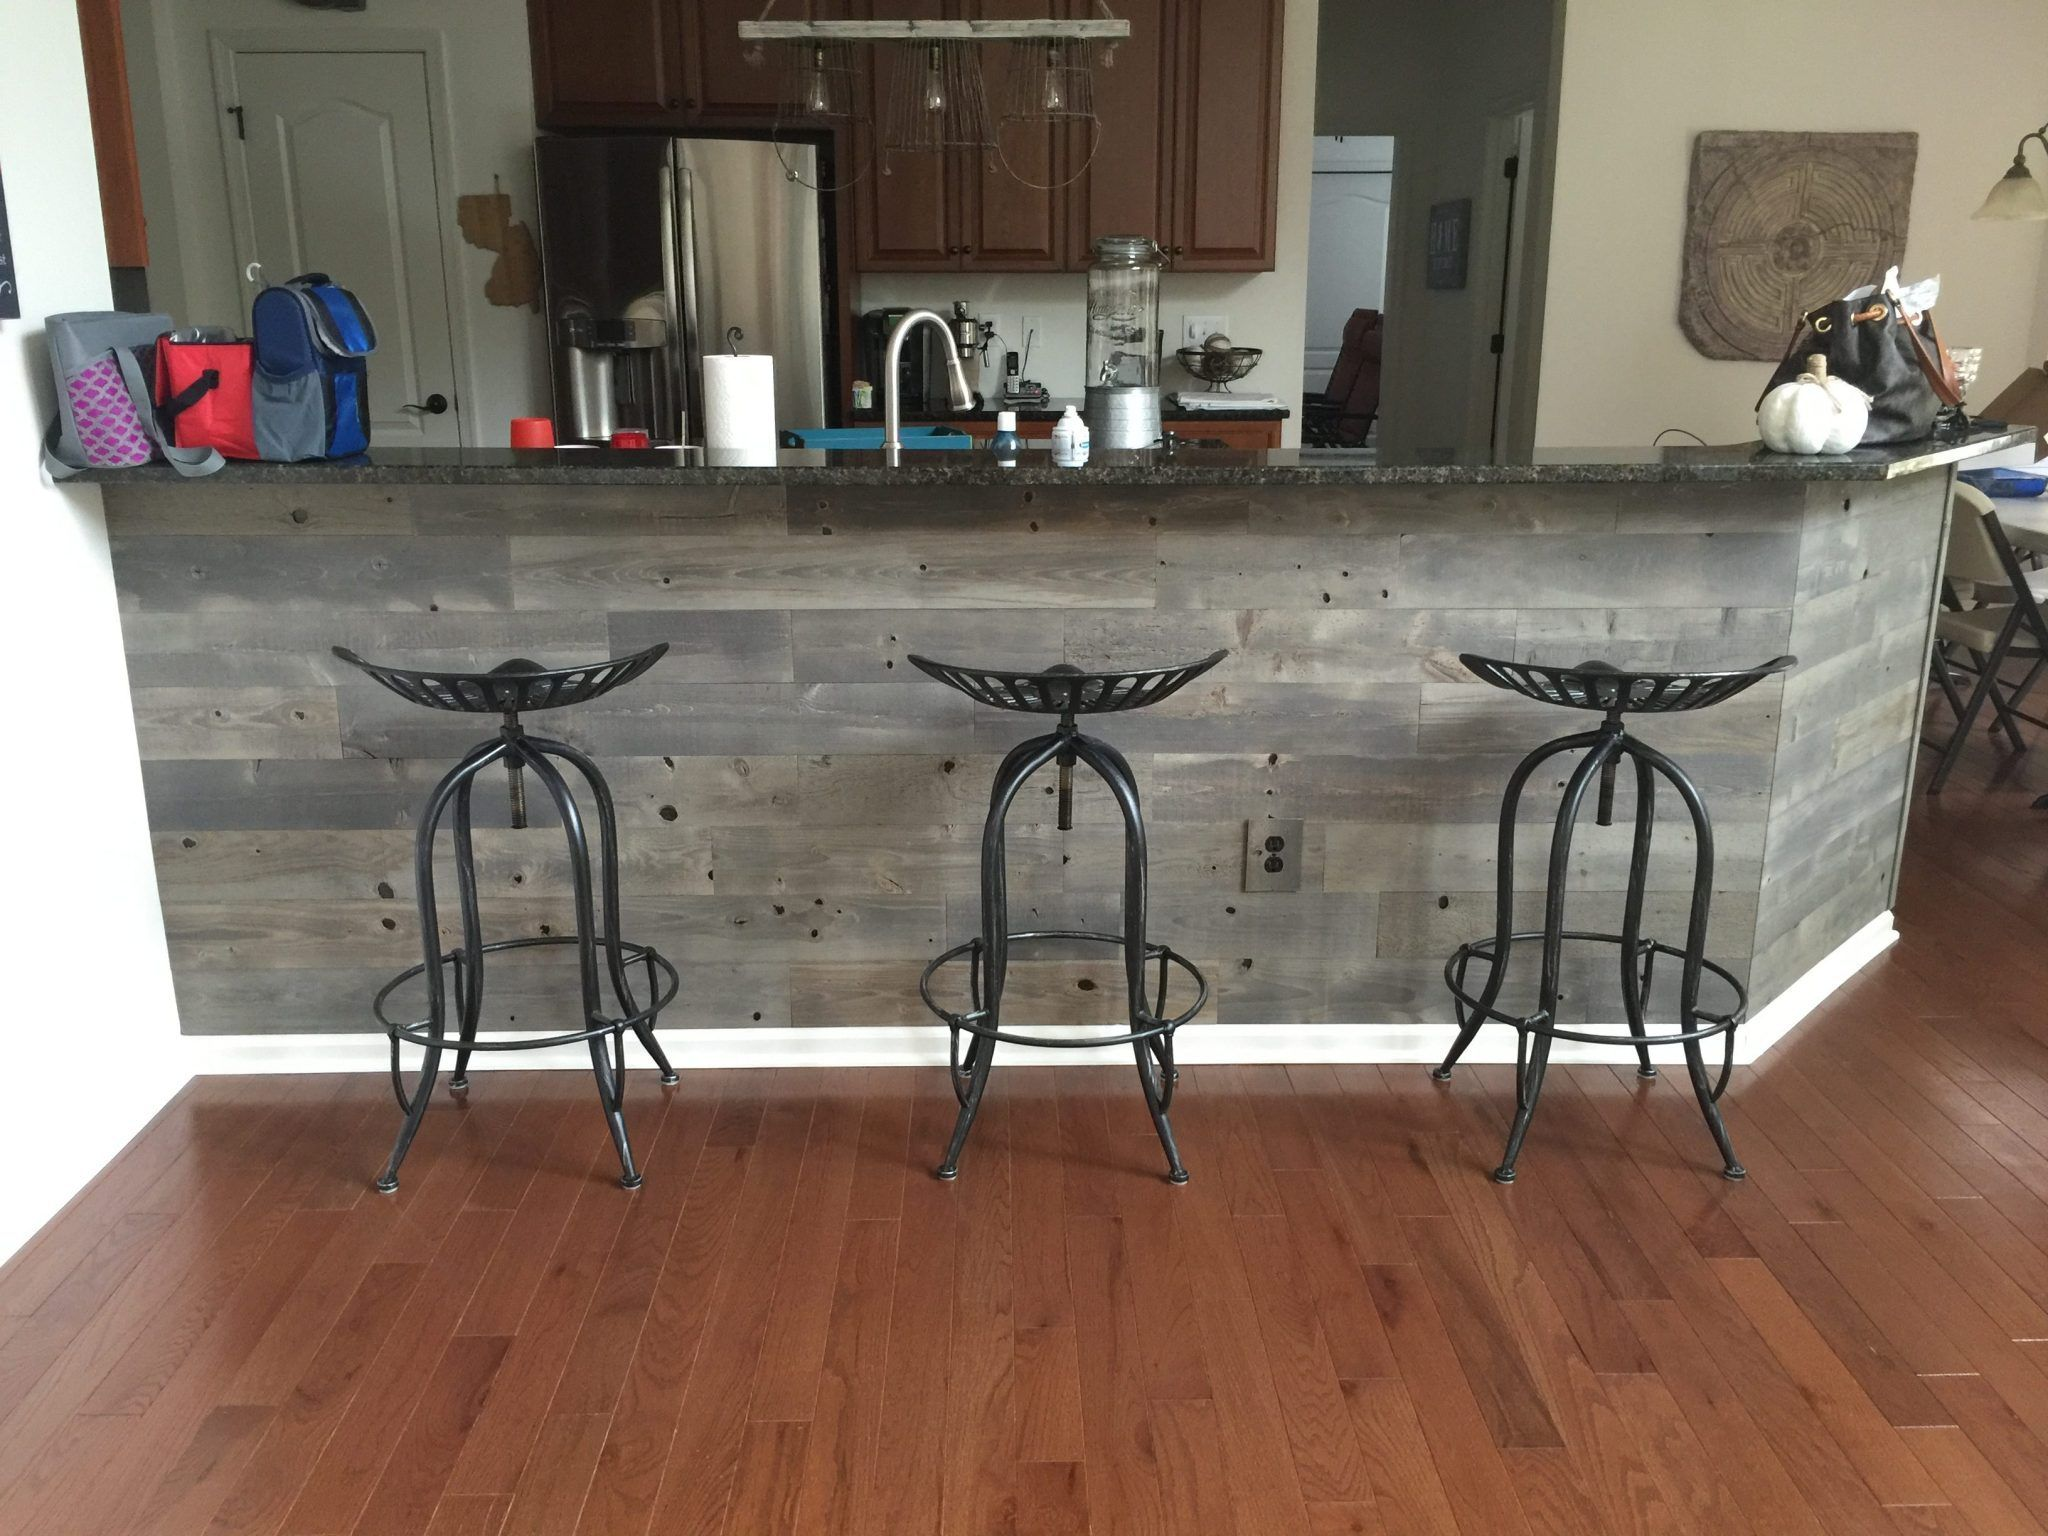 Timberchic Easy To Use Peel And Stick Wood Planks To Update Your Home Reclaim Your Space Wood Interior Design Peel And Stick Wood Wood Kitchen Island